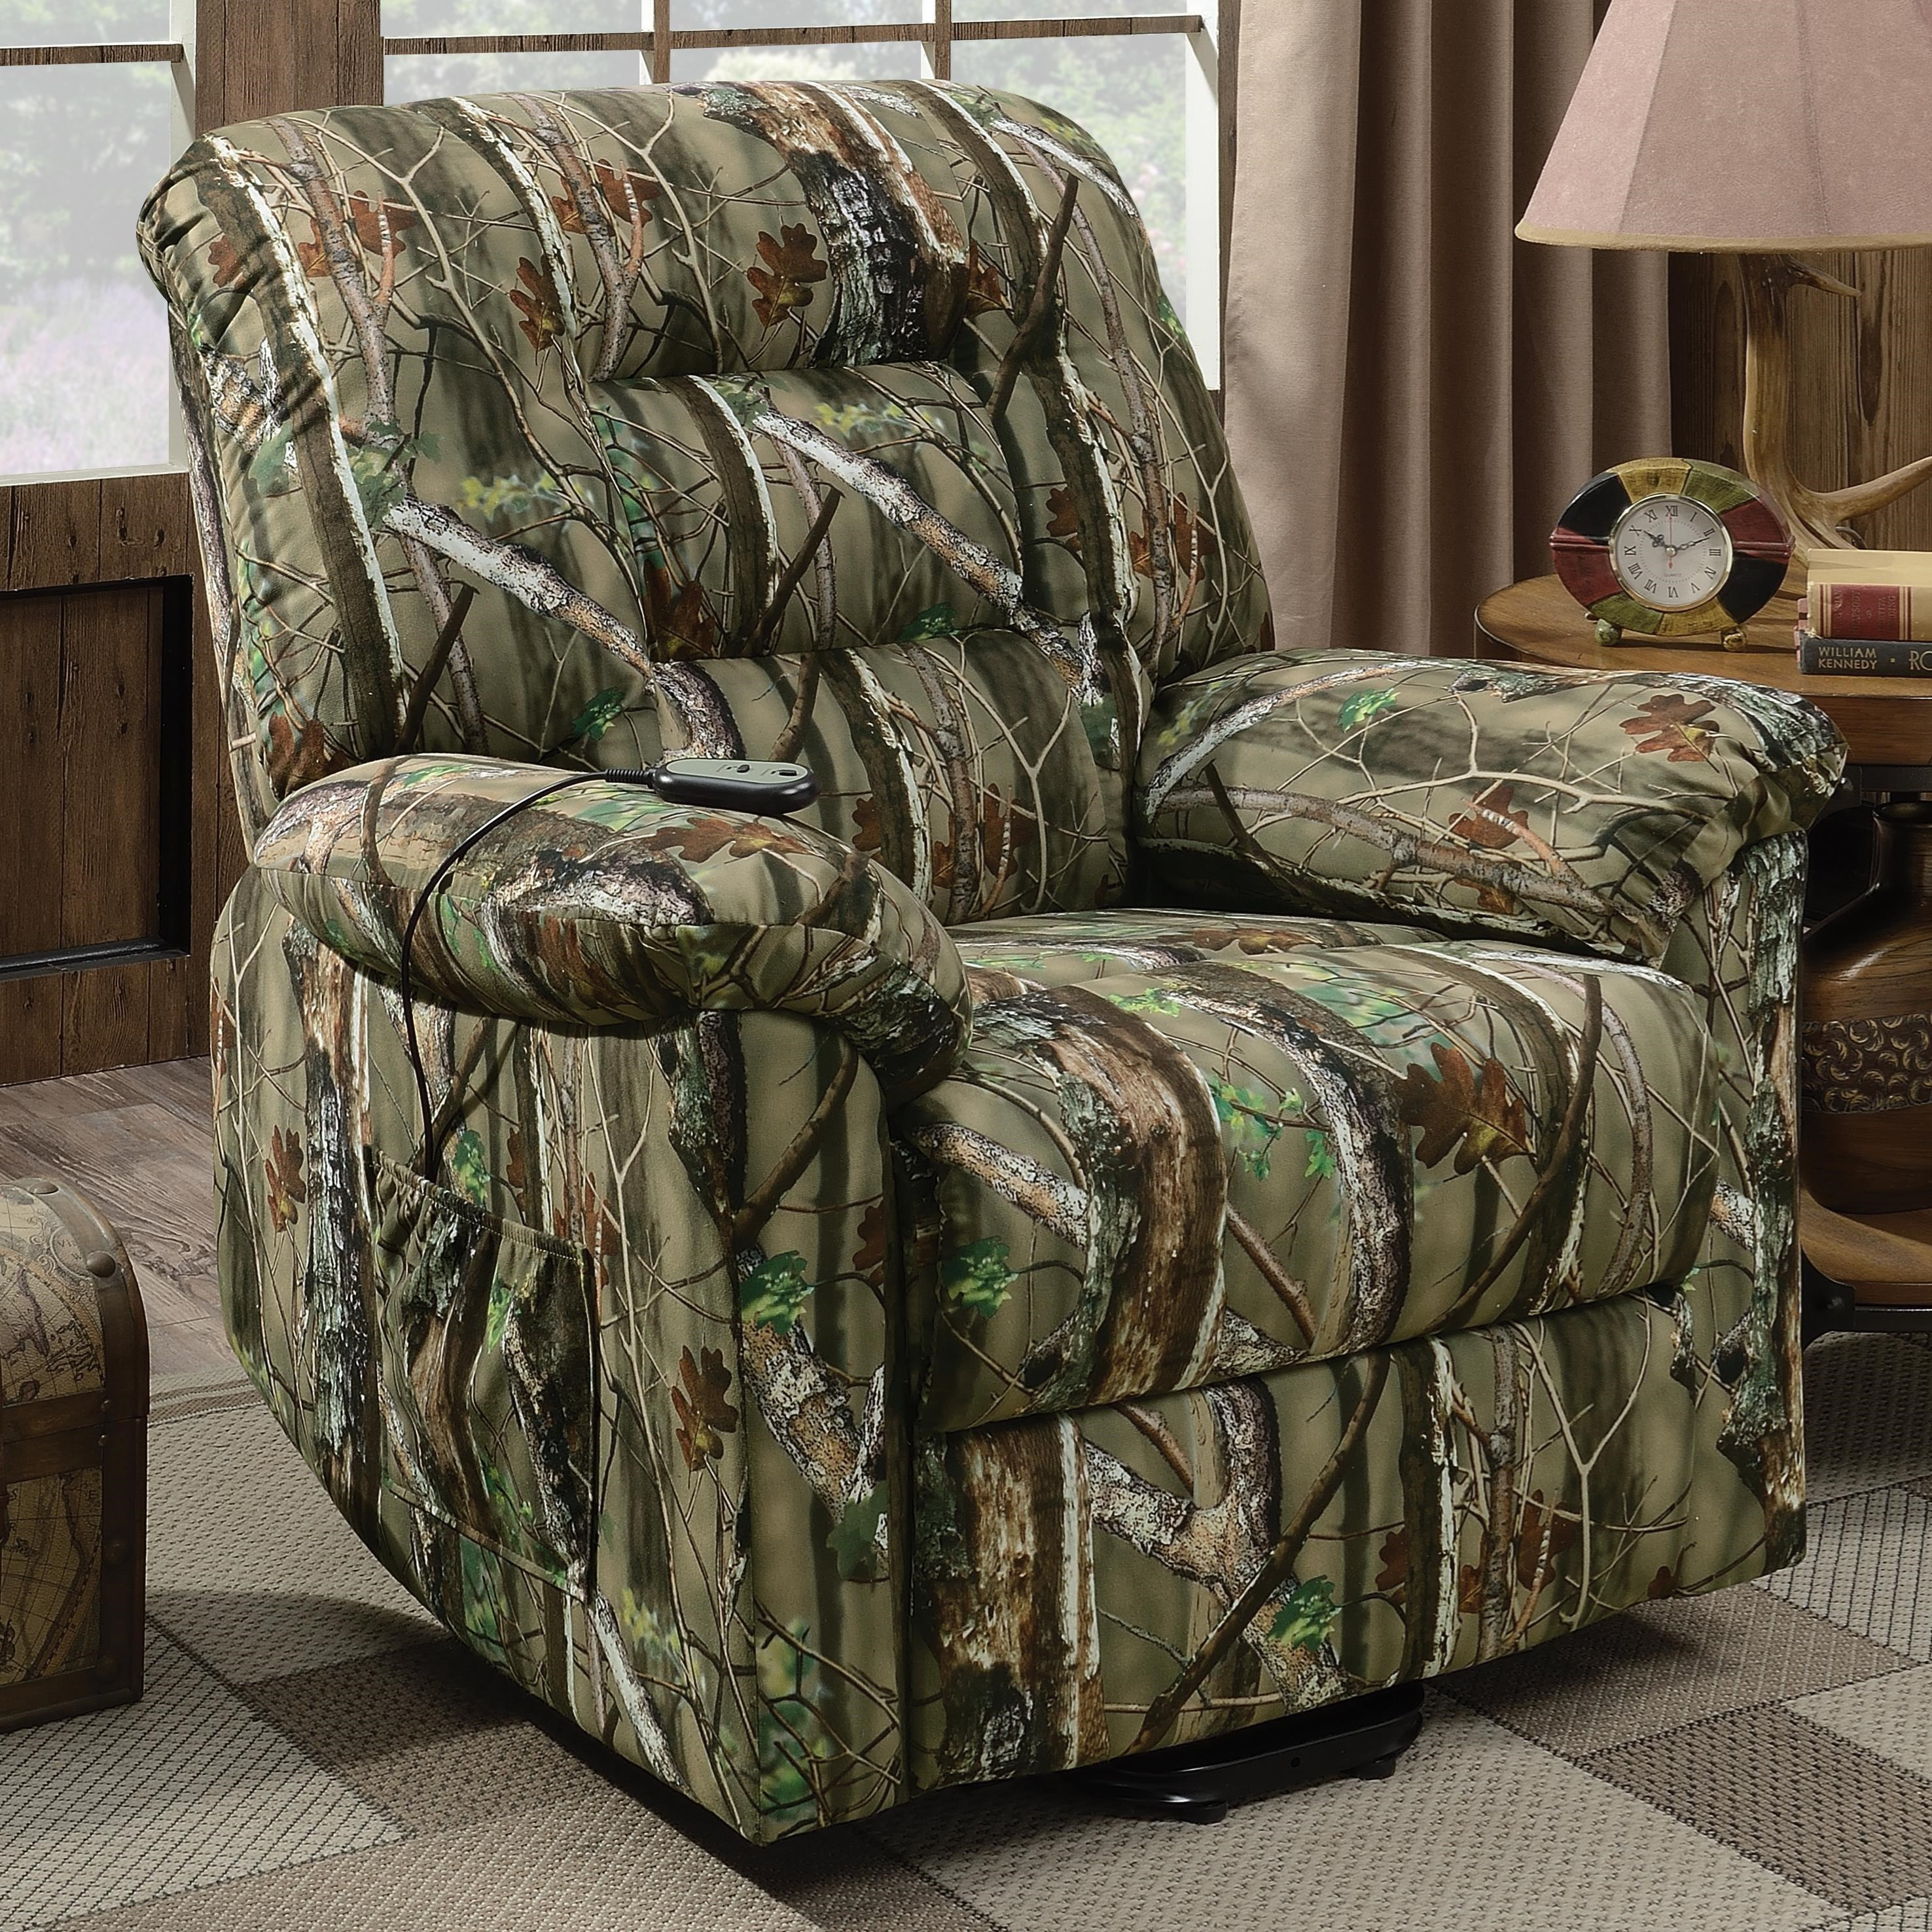 Coaster Lift Chairs Camouflage Lift Recliner - Dunk u0026 Bright Furniture - Lift Recliner  sc 1 st  Dunk u0026 Bright Furniture & Coaster Lift Chairs Camouflage Lift Recliner - Dunk u0026 Bright ... islam-shia.org